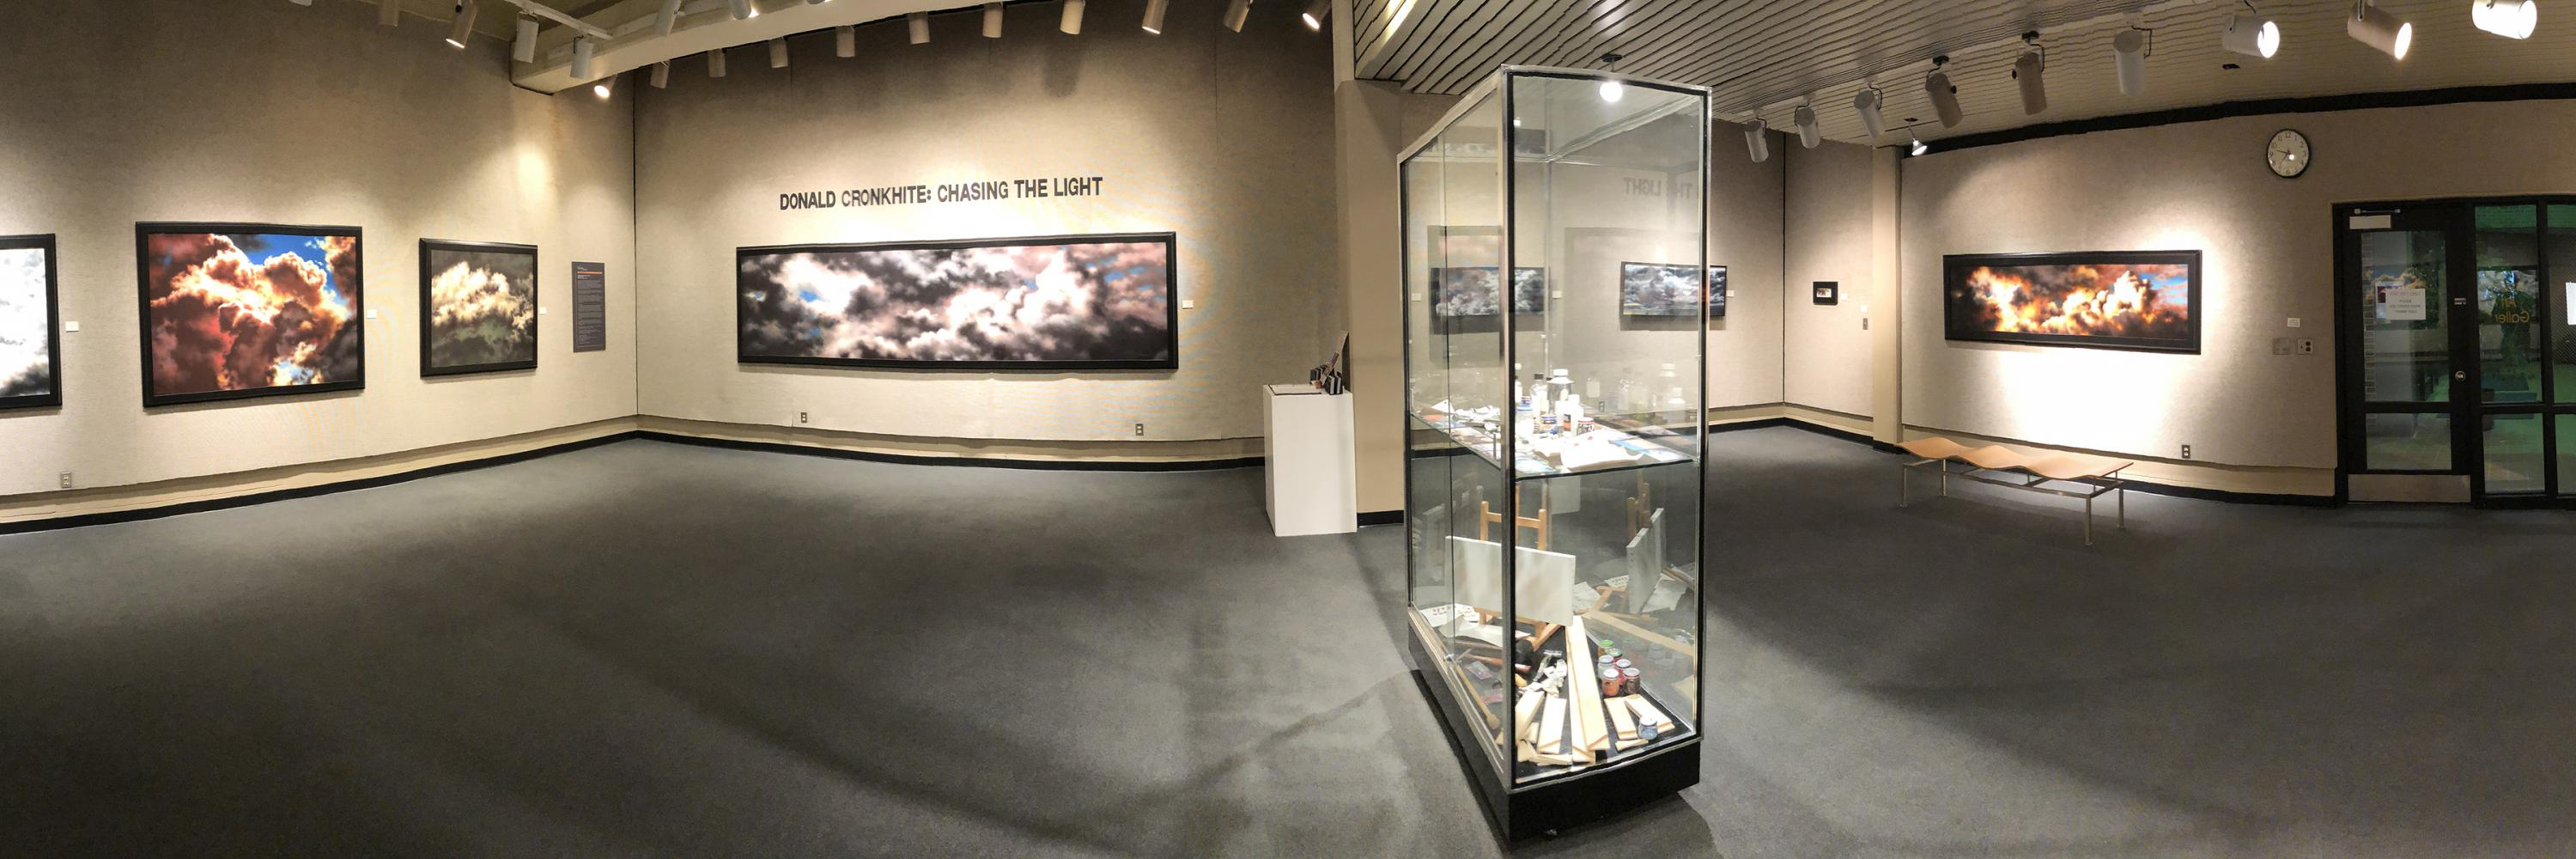 "Panoramic image of gallery exhibition ""Donald Cronkhite: Chasing The Light"""